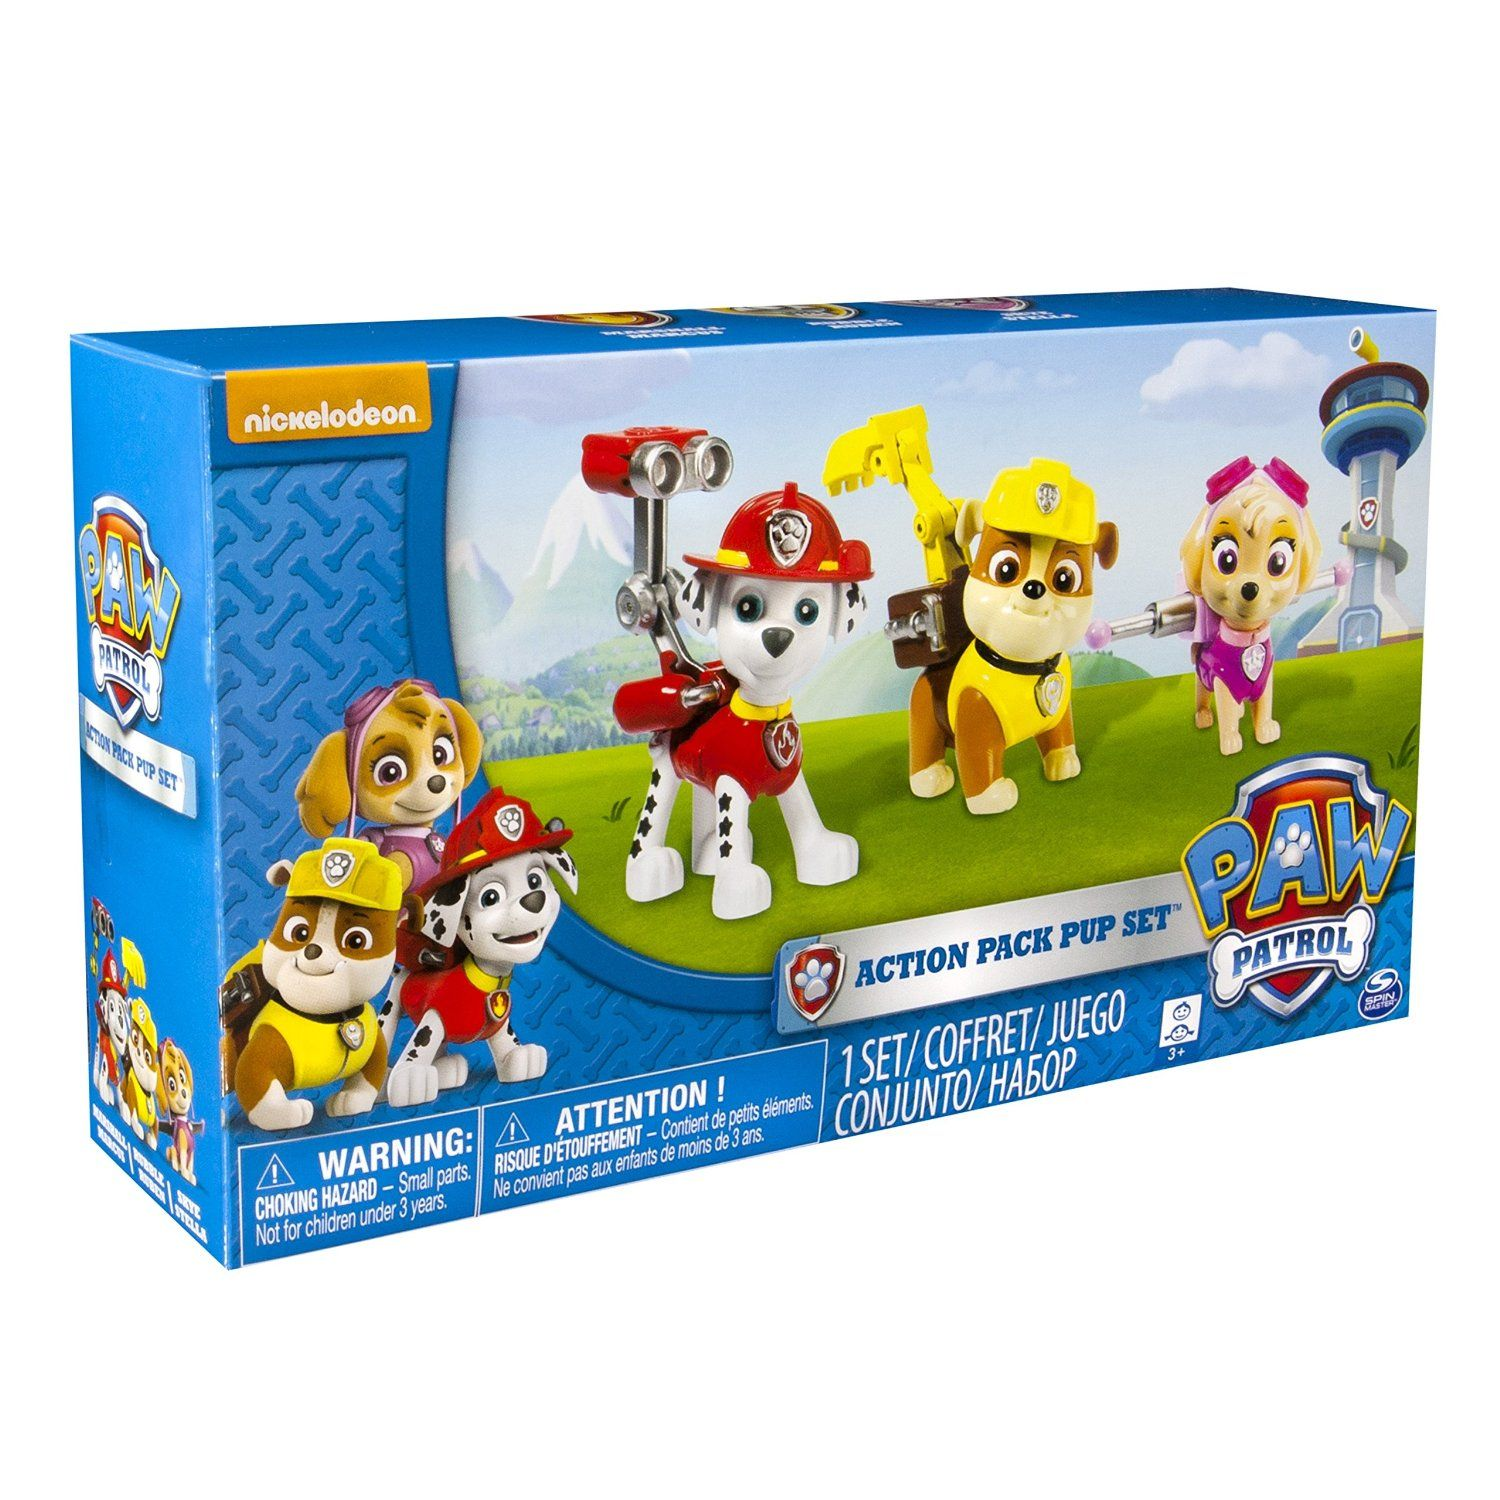 Paw Patrol Toys & Figures by Nickelodeon | Top Toys for Kids